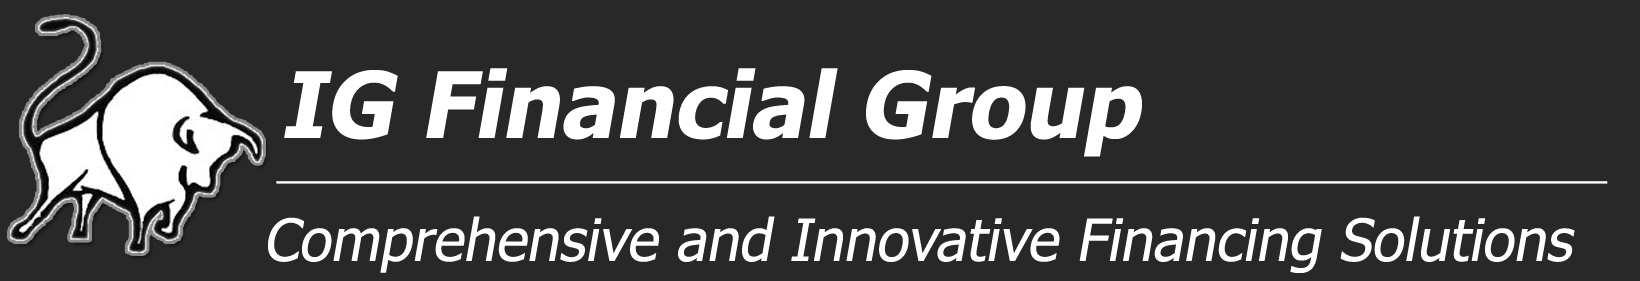 IG Financial Group company